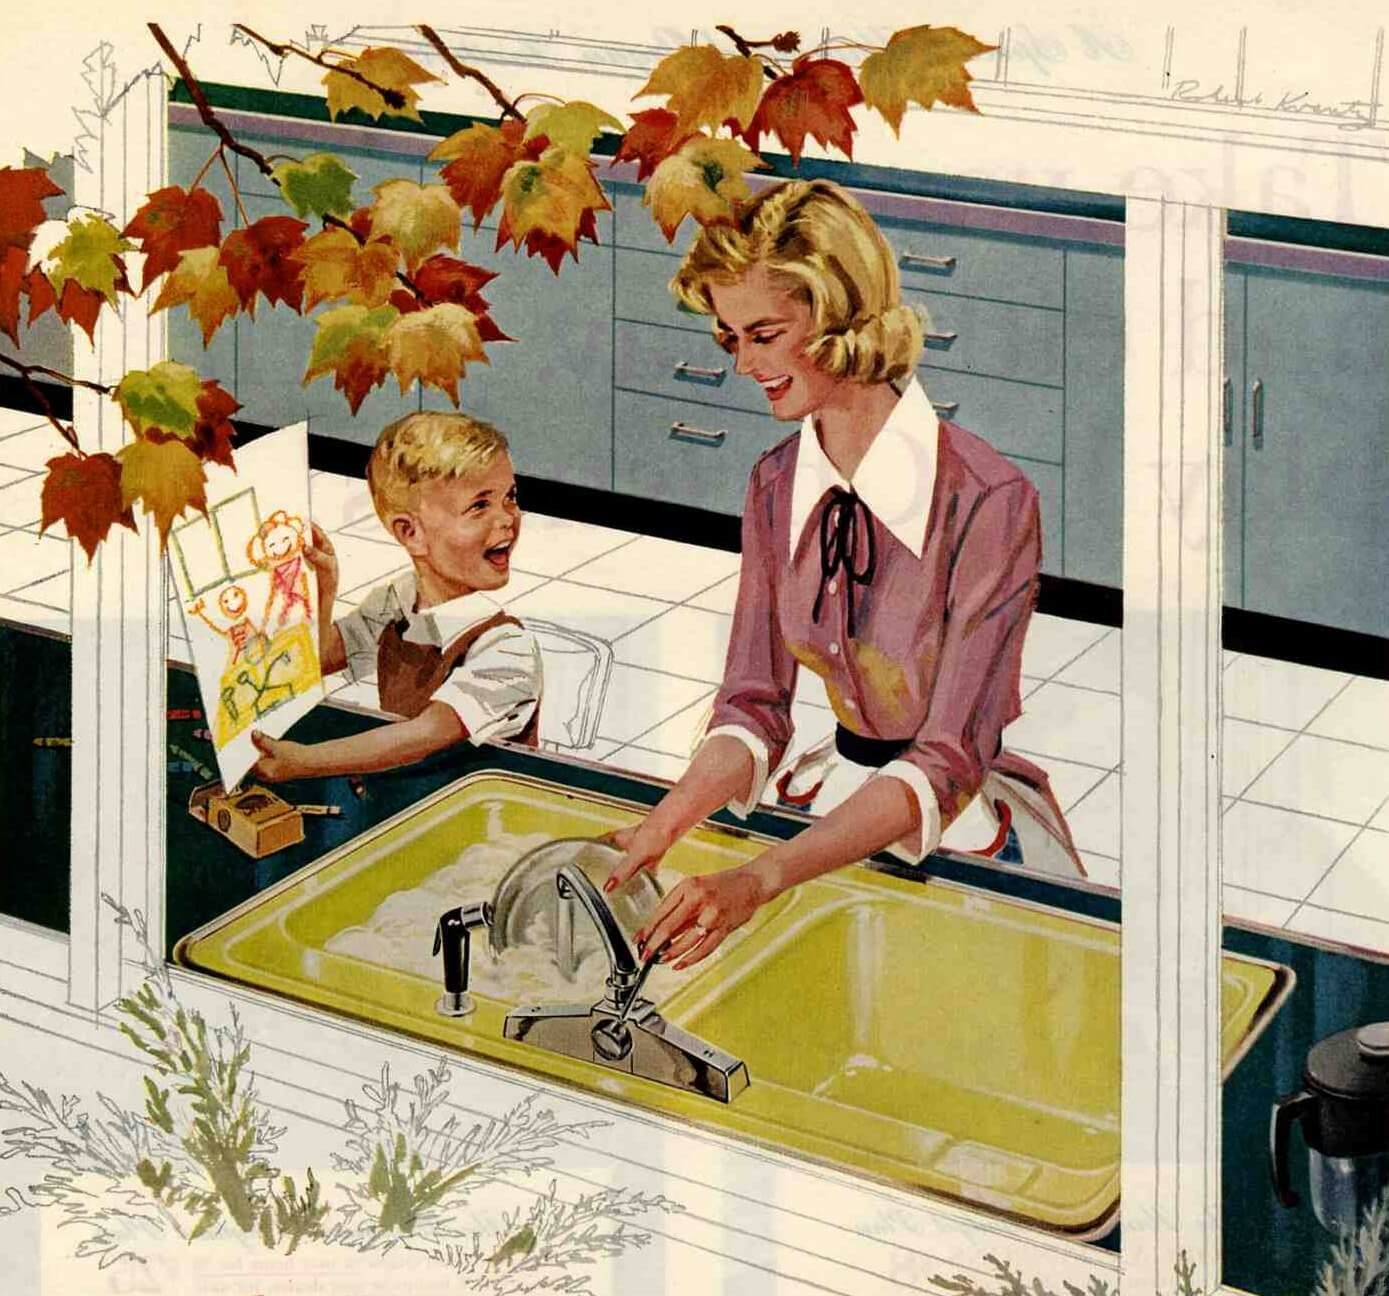 Retro Kitchen Illustration: Retro Kitchen Paint Colors From 50s To Early 60s Geneva